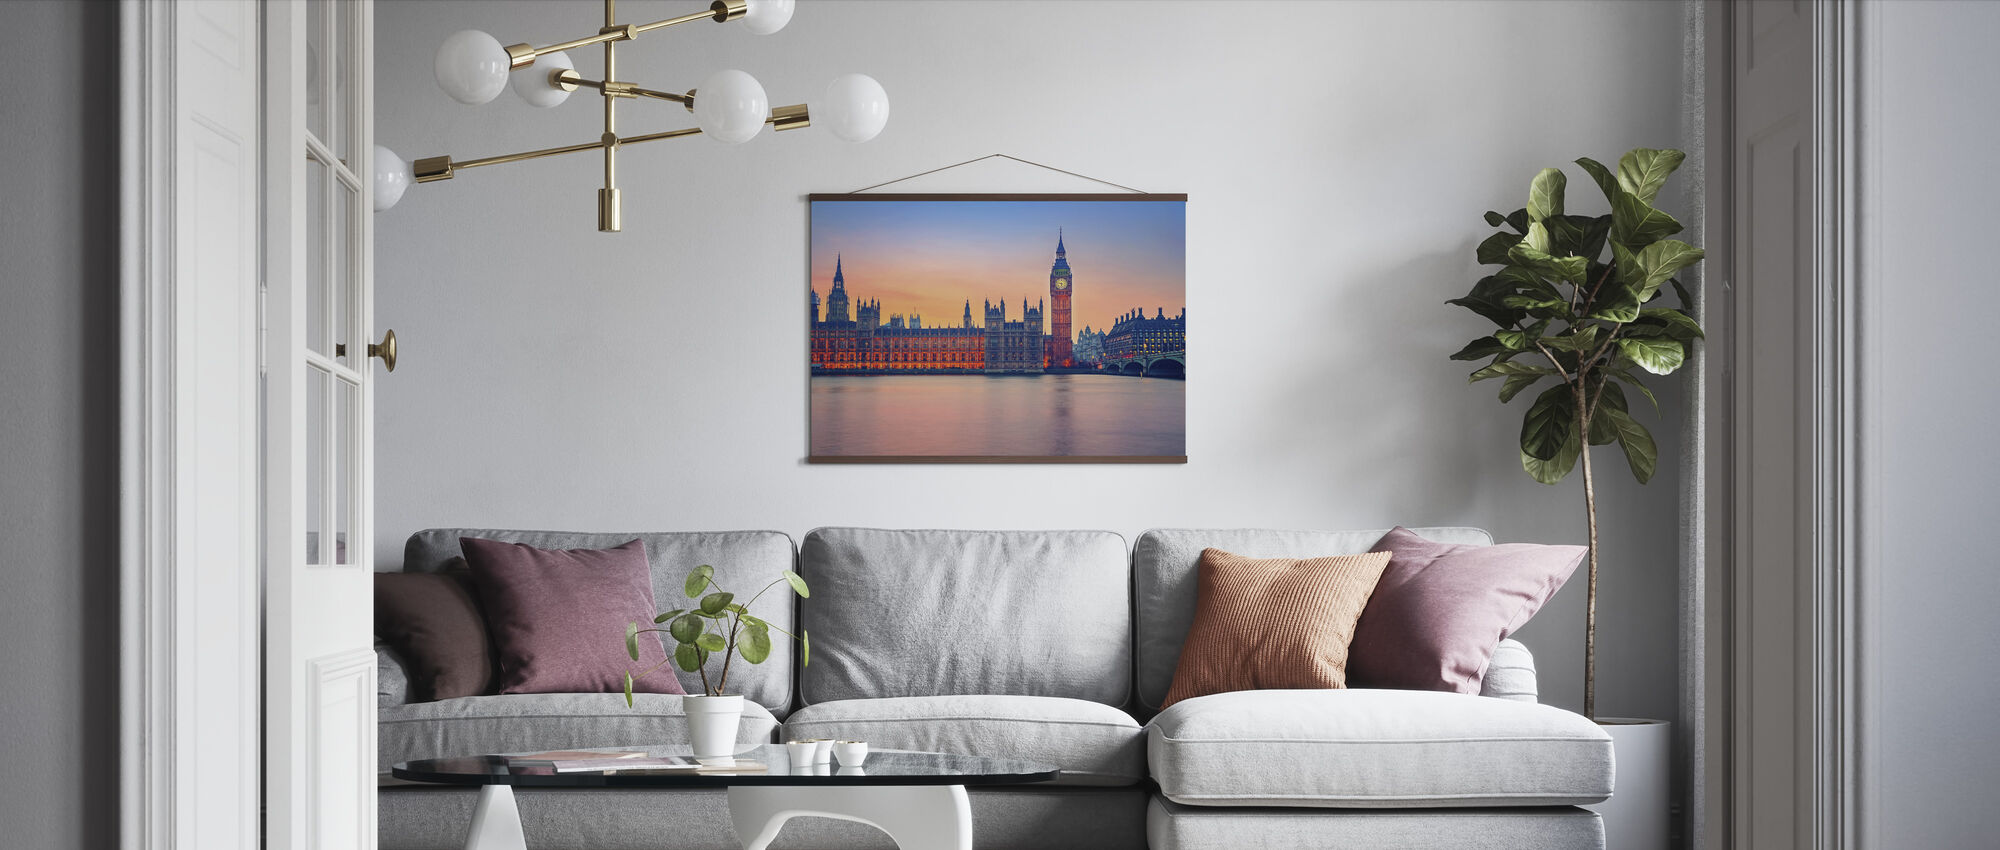 Big Ben and Houses of Parliament - Poster - Living Room